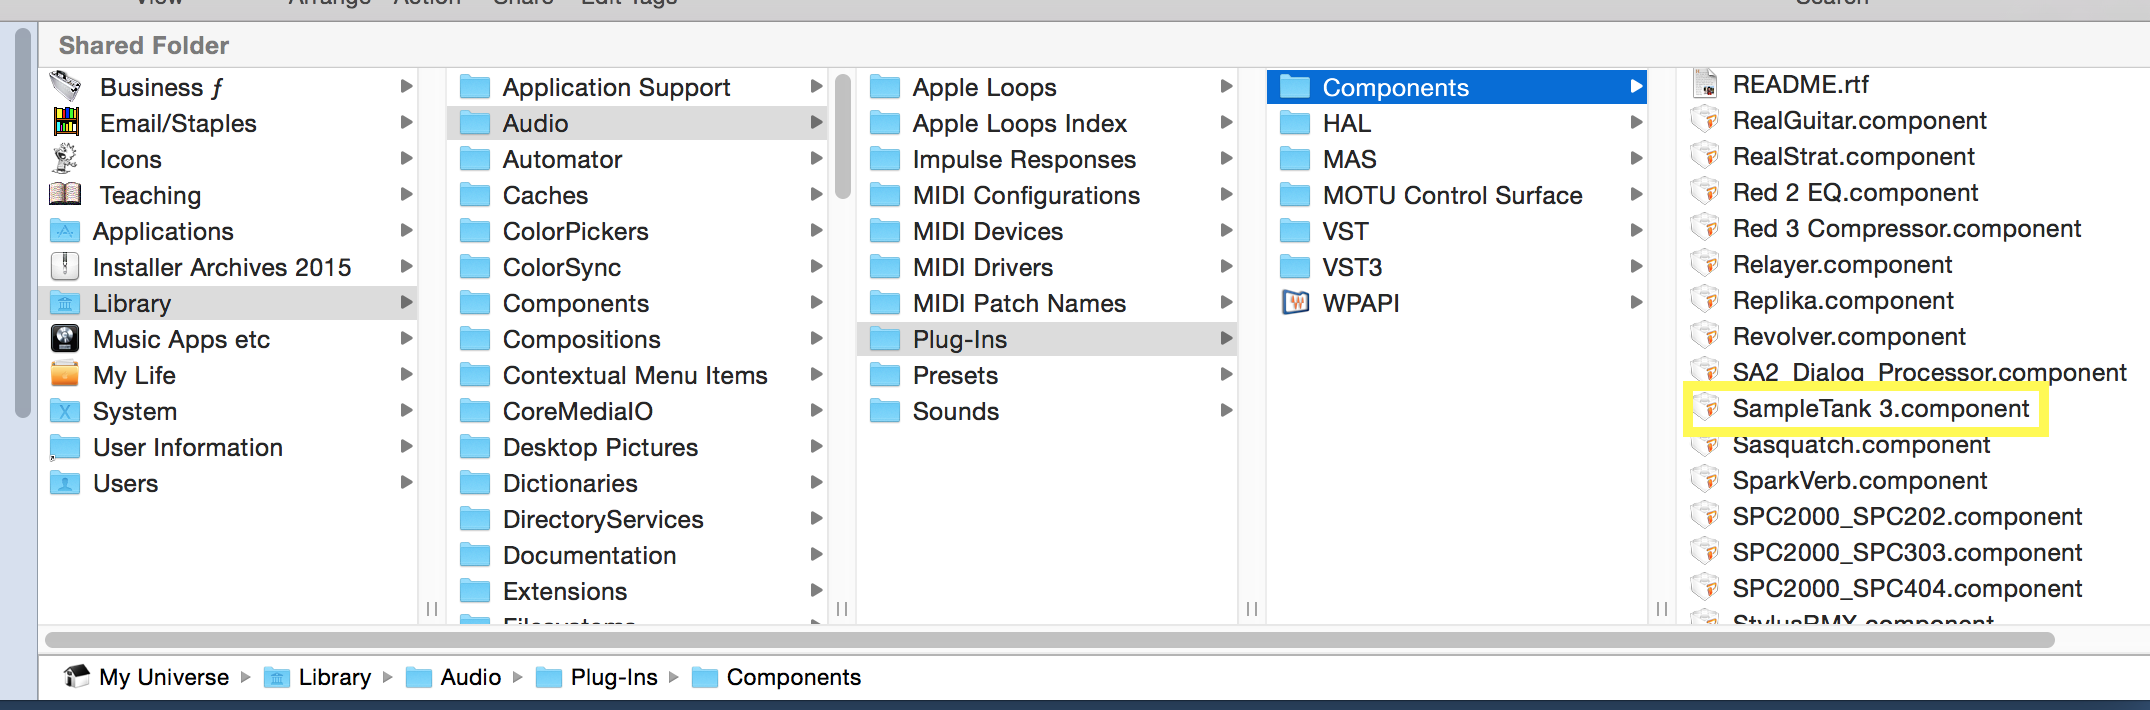 components.png